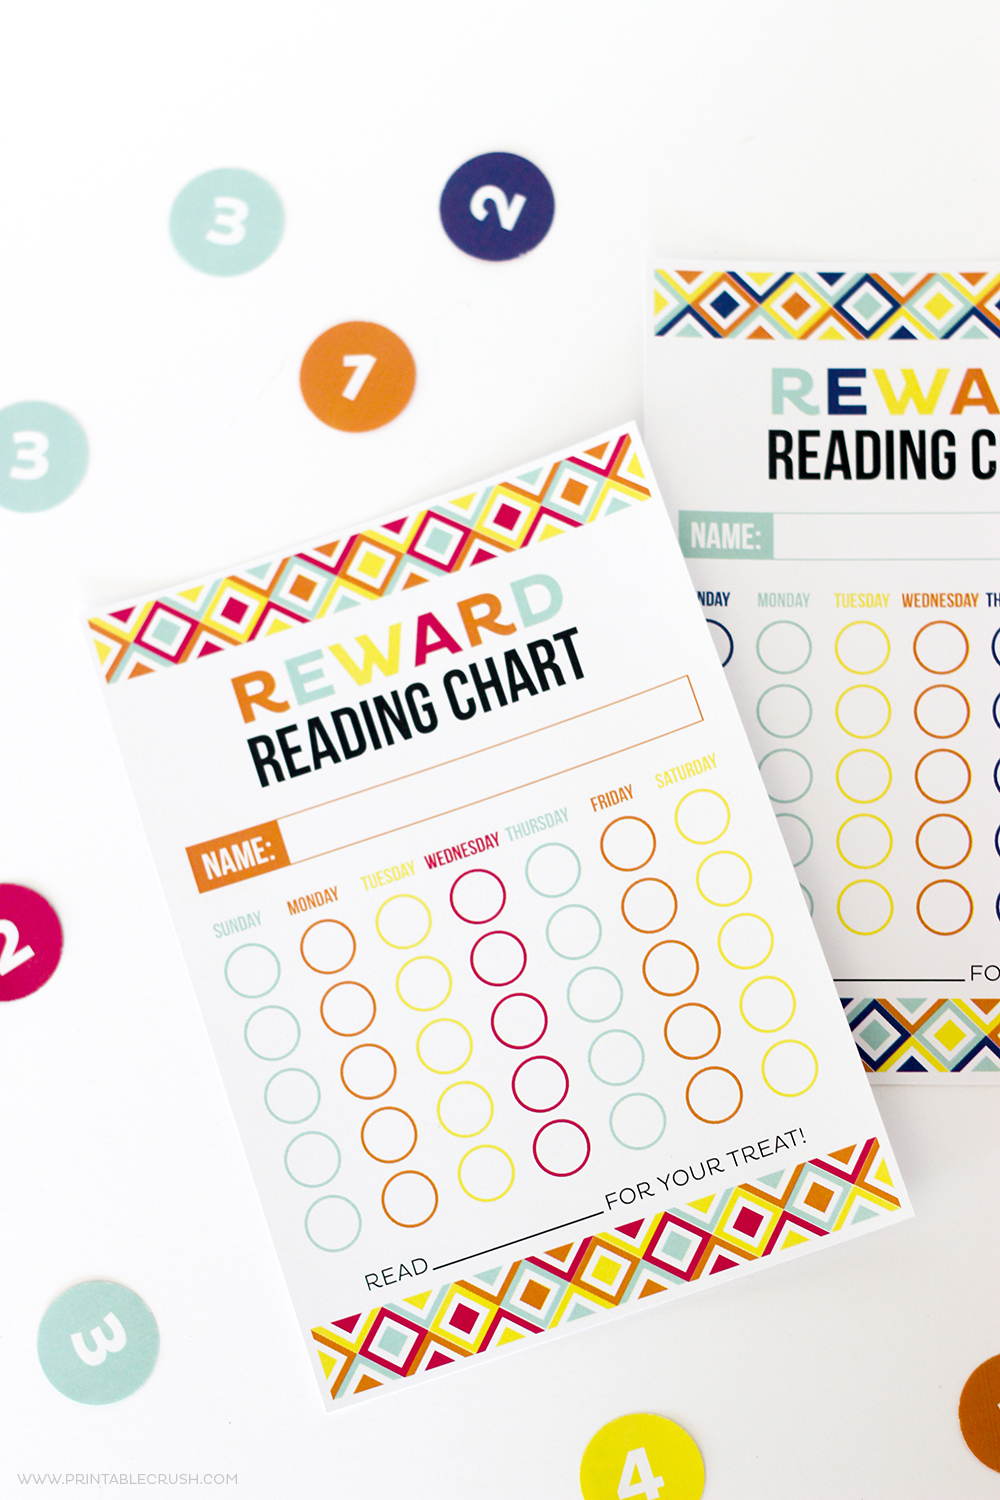 graphic regarding Printable Reading Chart known as Cost-free Printable Gain Studying Chart - Printable Crush